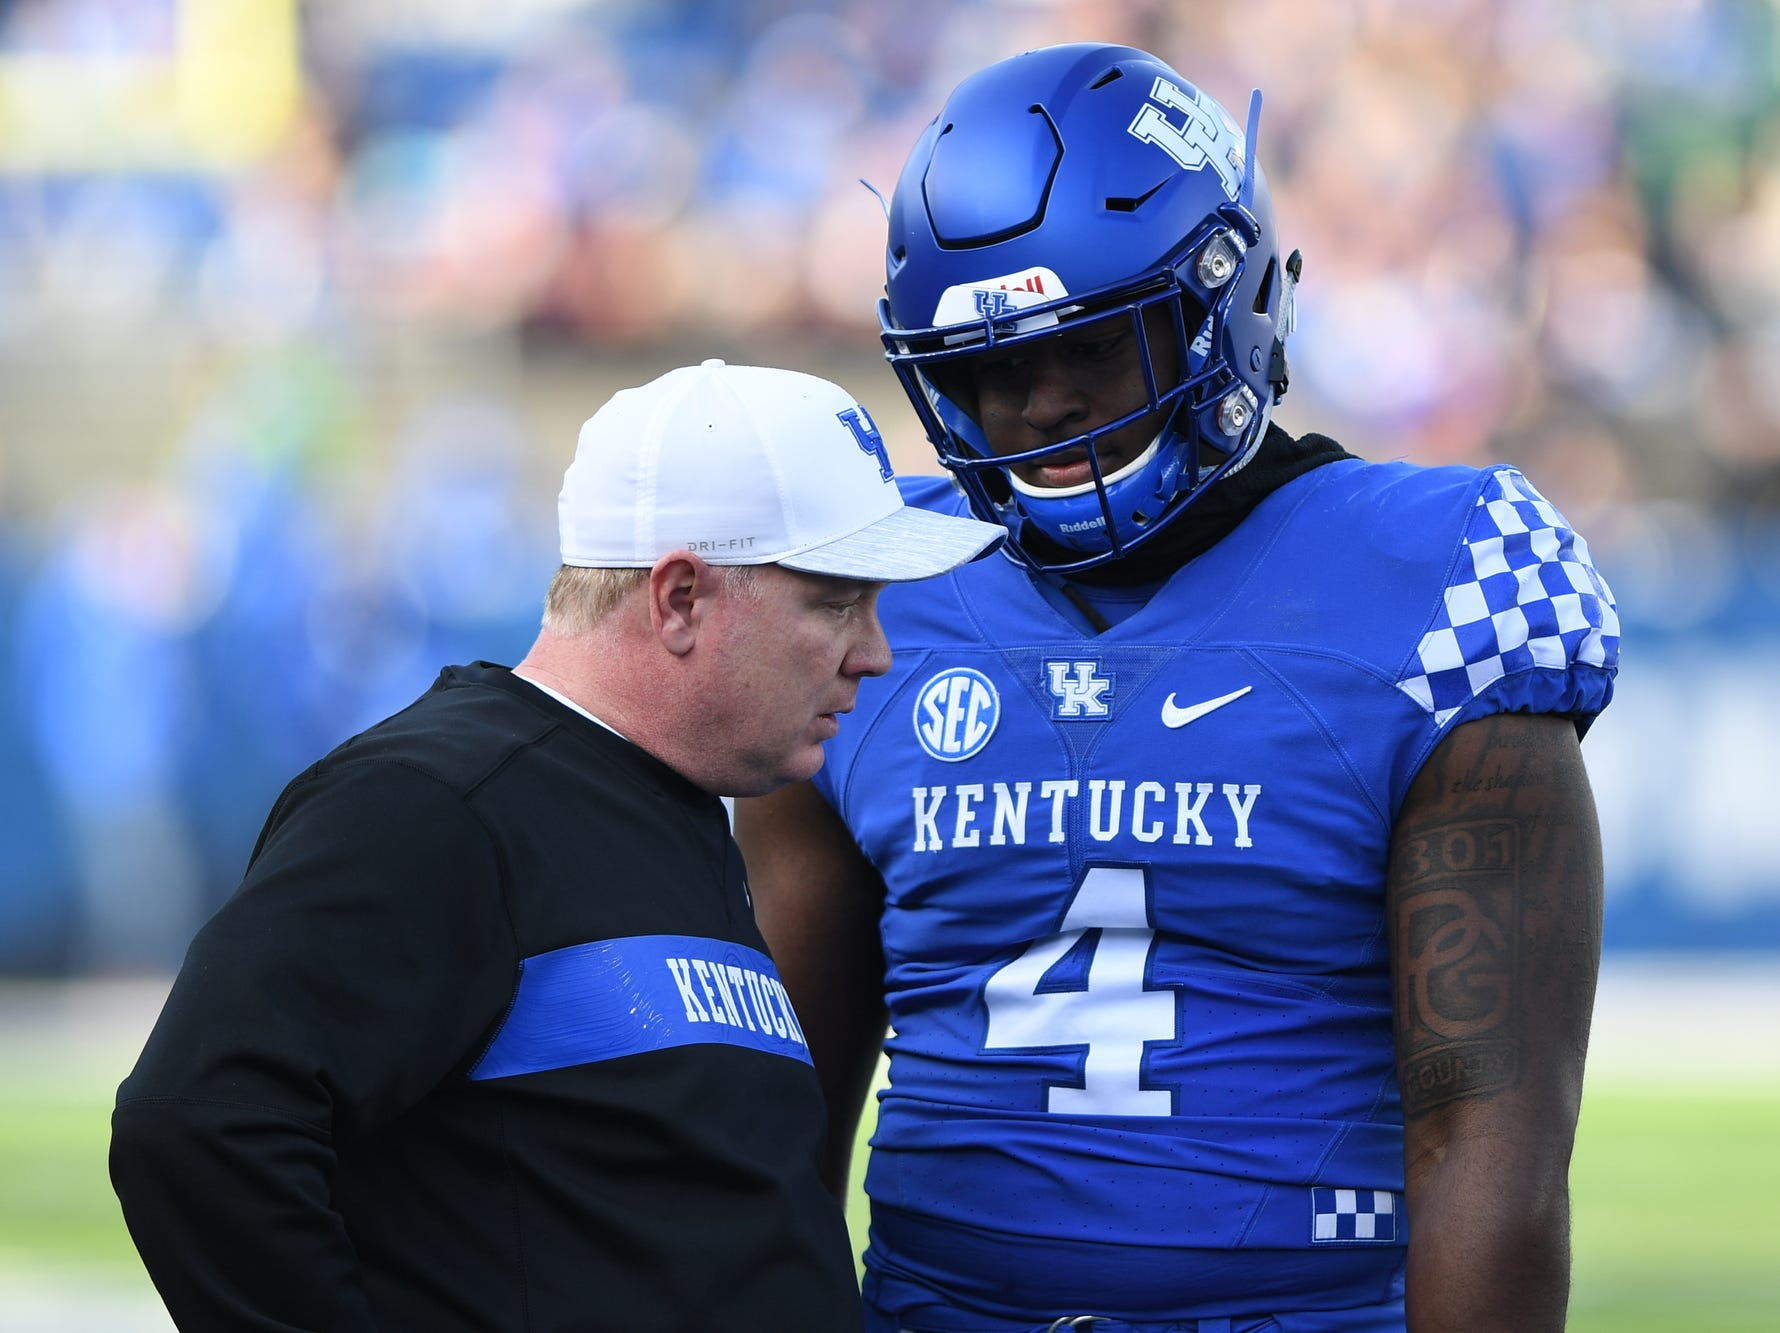 UK head coach Mark Stoops talk to DL Joshua Paschal during the University of Kentucky football game against Middle Tennessee at Kroger Field in Lexington, Kentucky on Saturday, November 17, 2018.